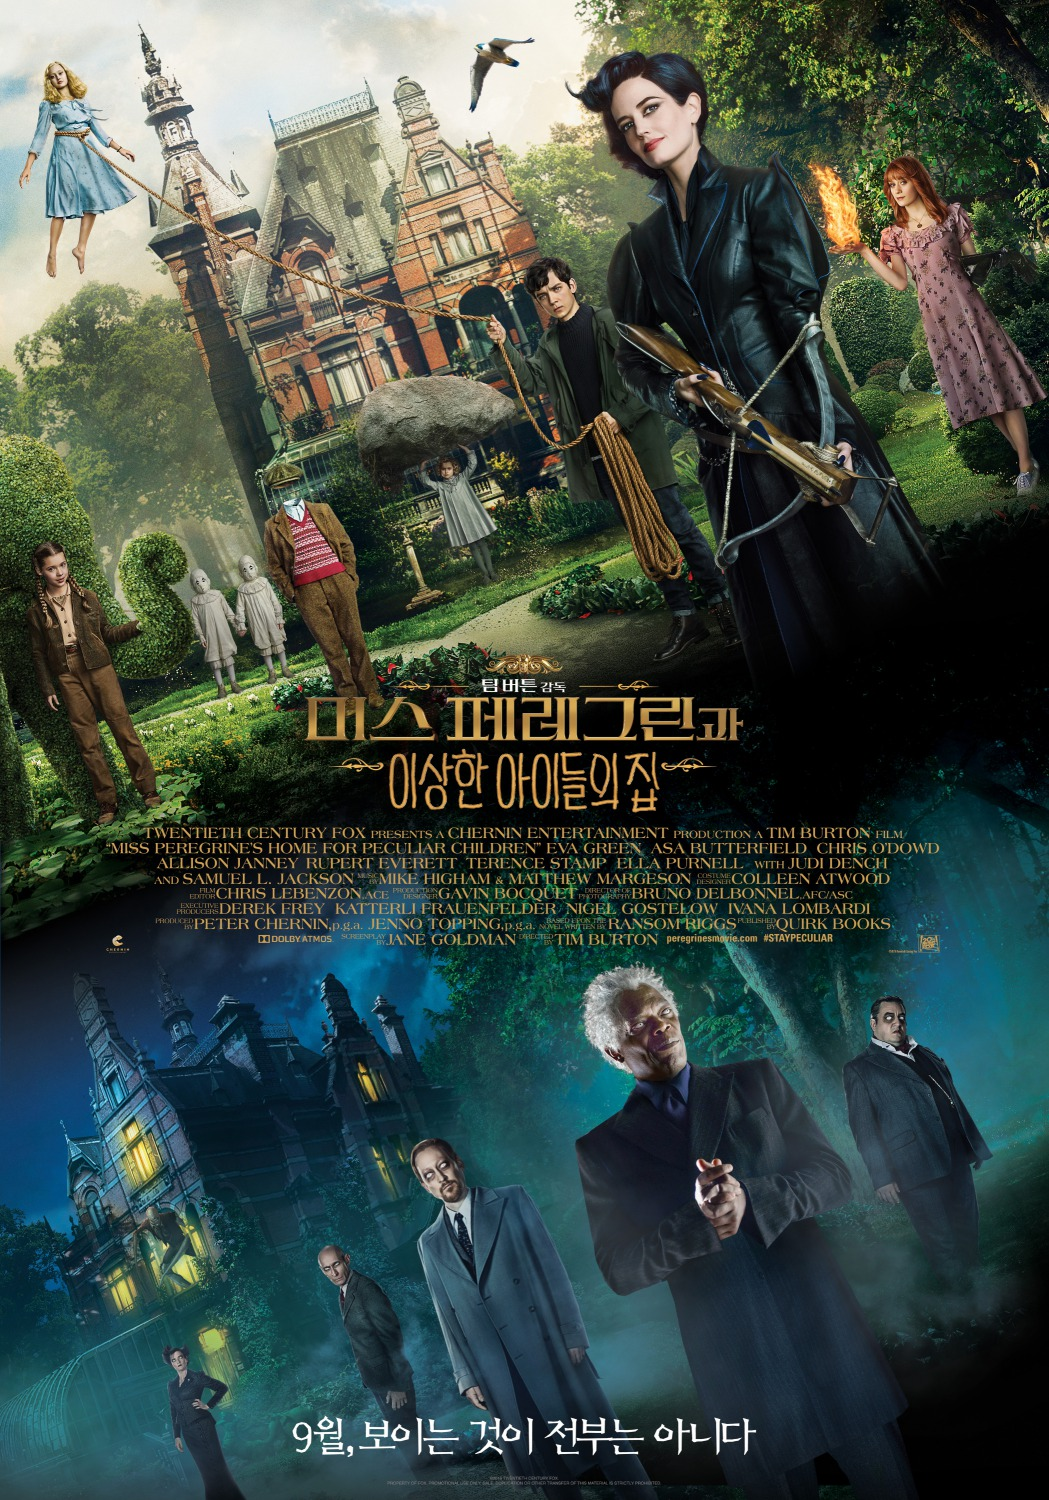 affiche poster miss peregrine enfants particuliers home peculiar children disney fox